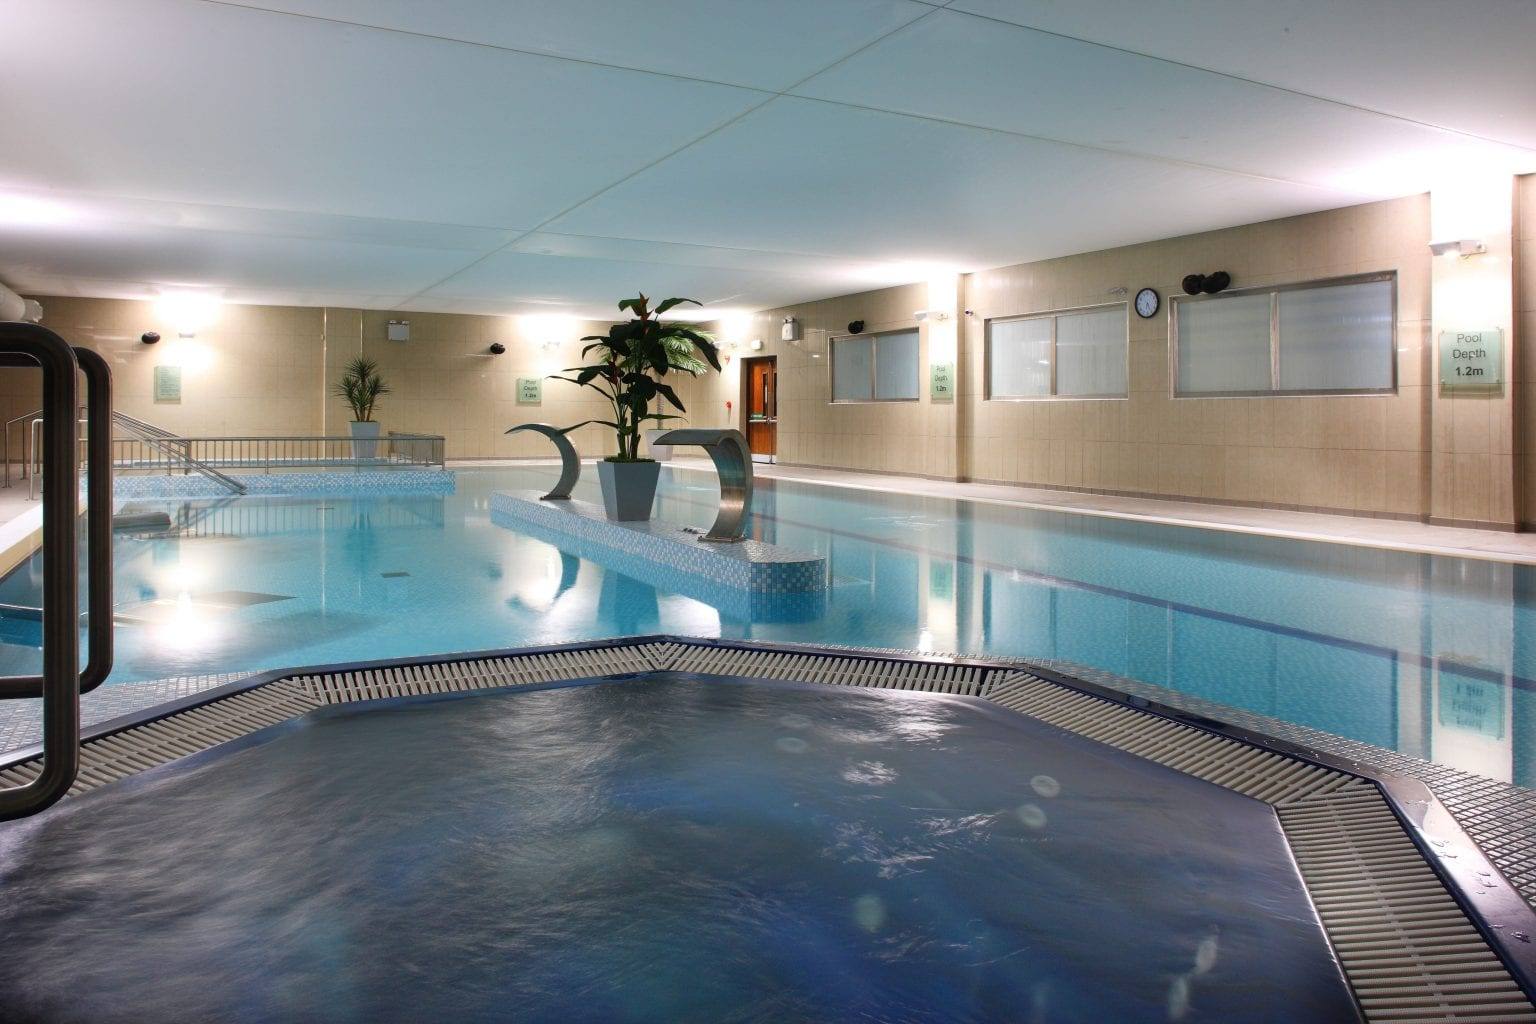 Hotels In Galway With Swimming Pools